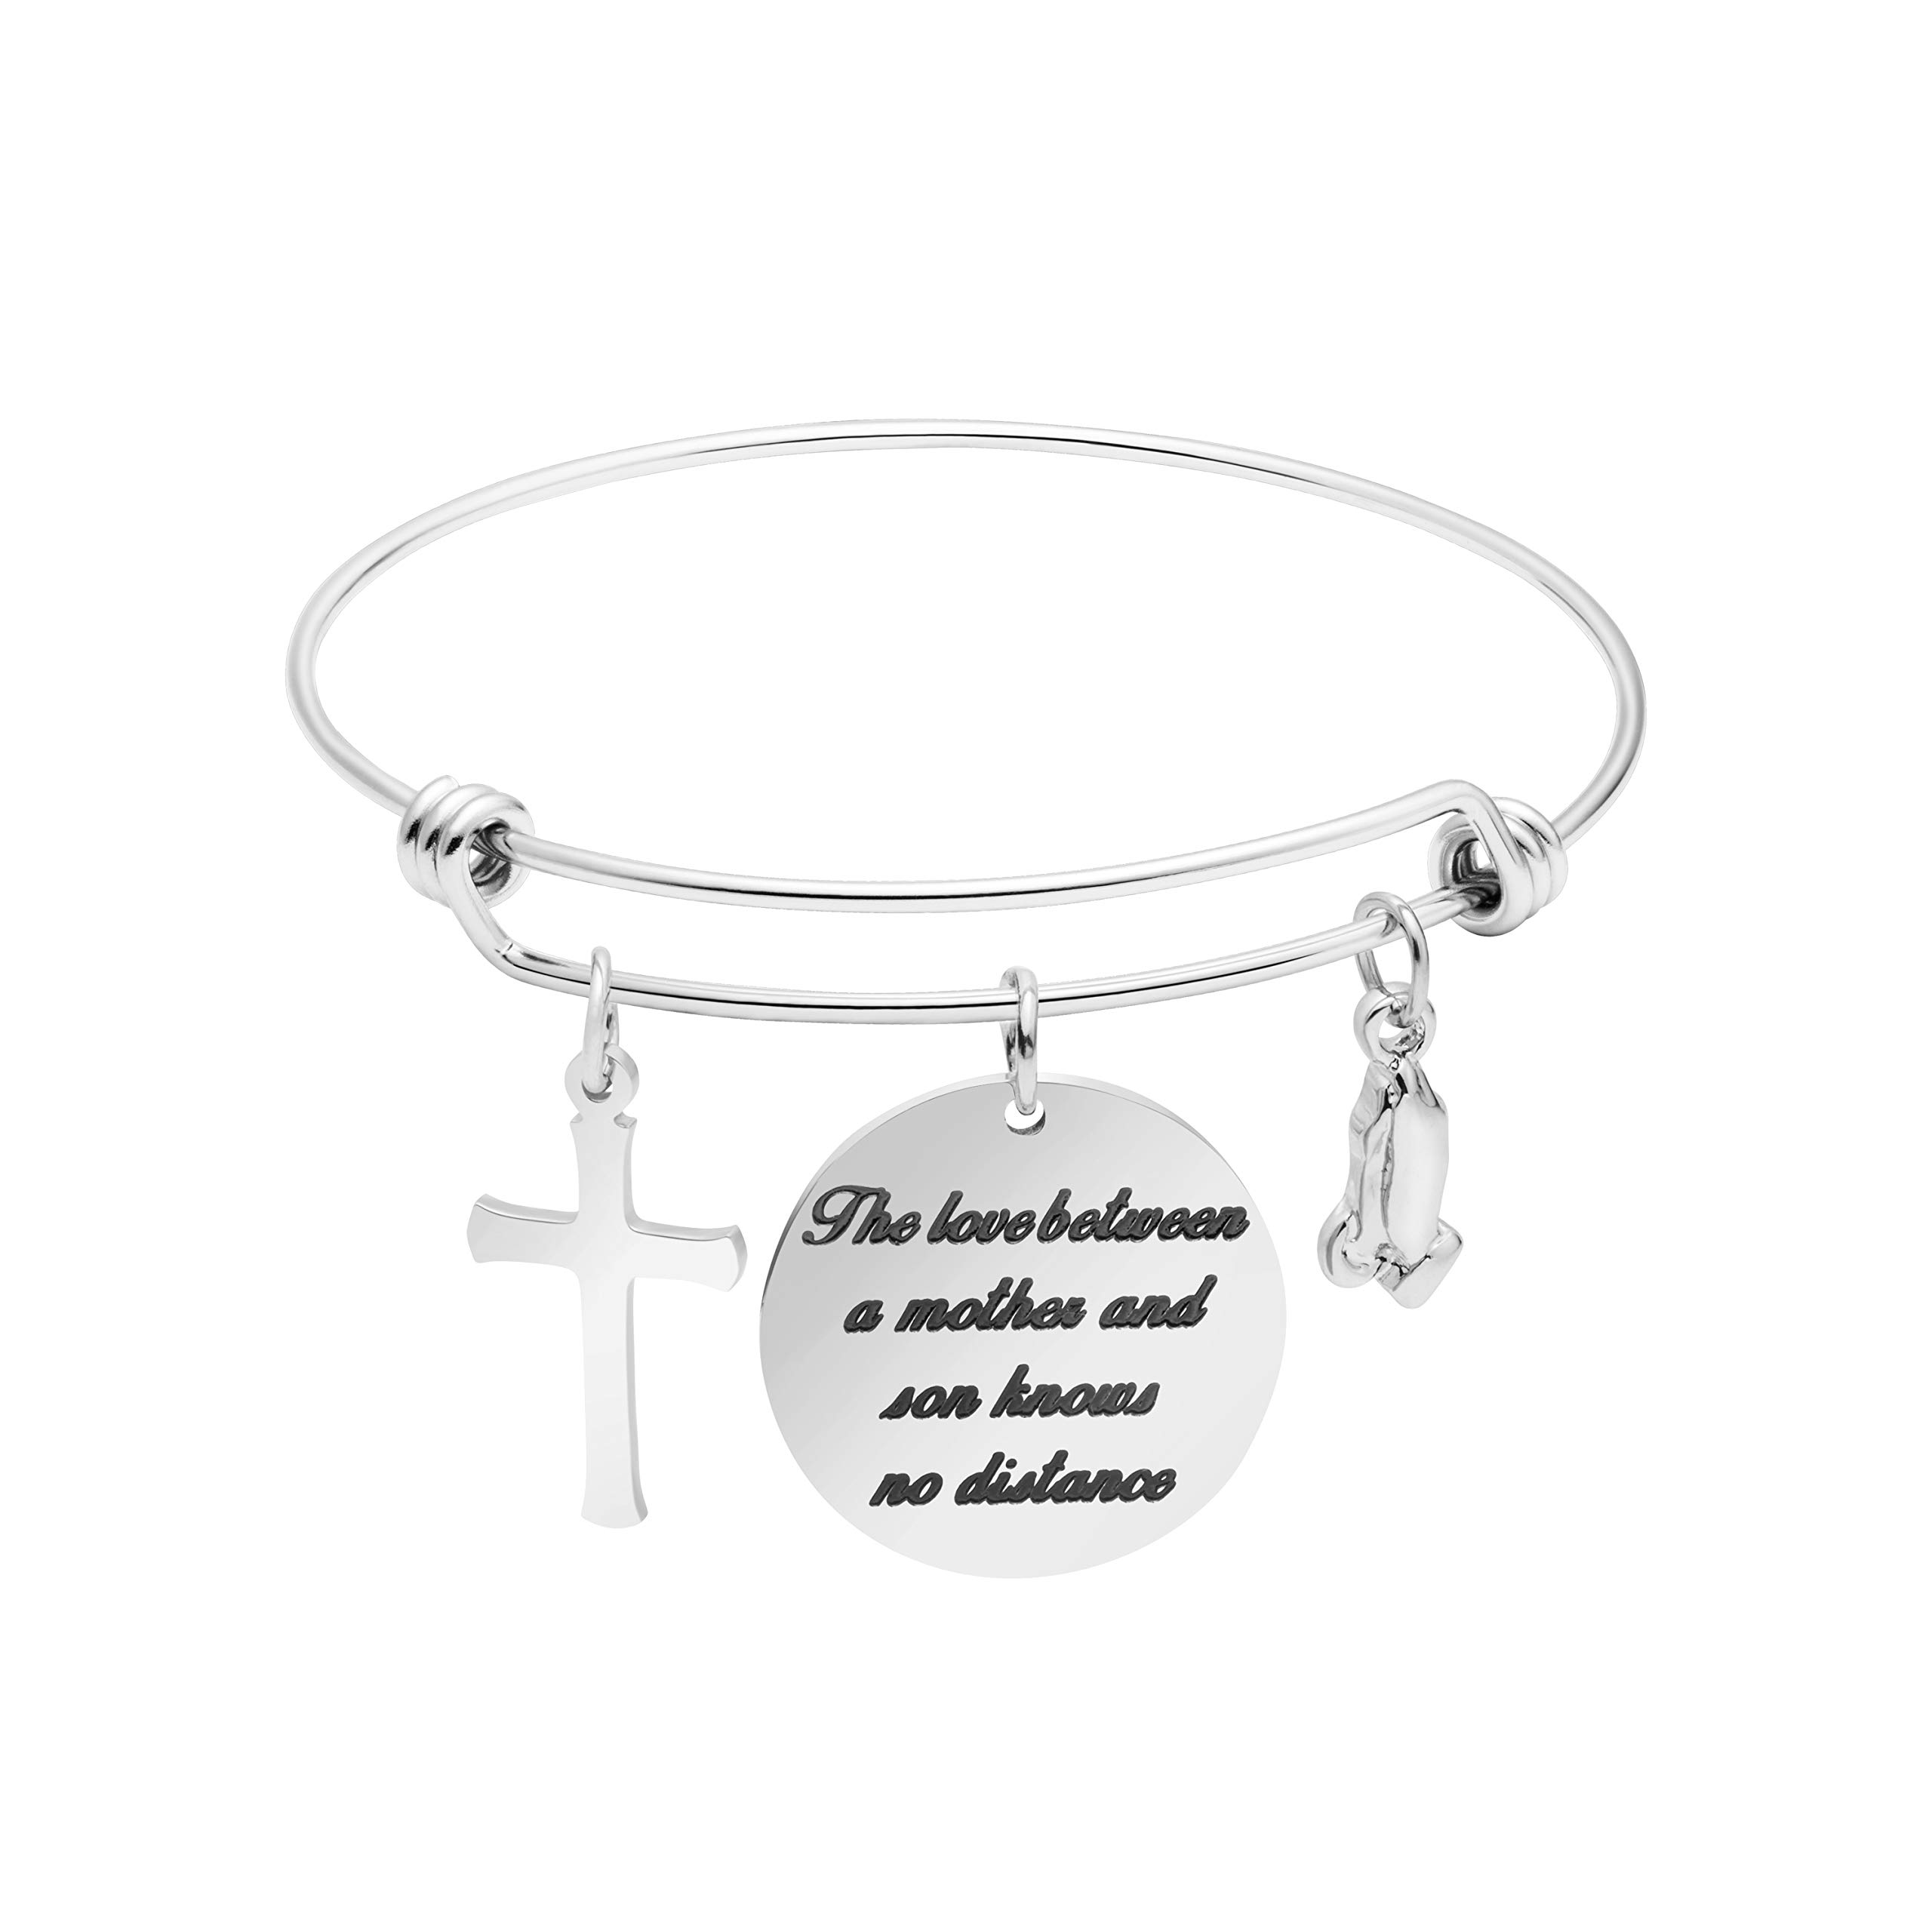 Memgift Gift for Mother Stainless Steel Bracelet The Love Between a Mother and Son Knows No Distance